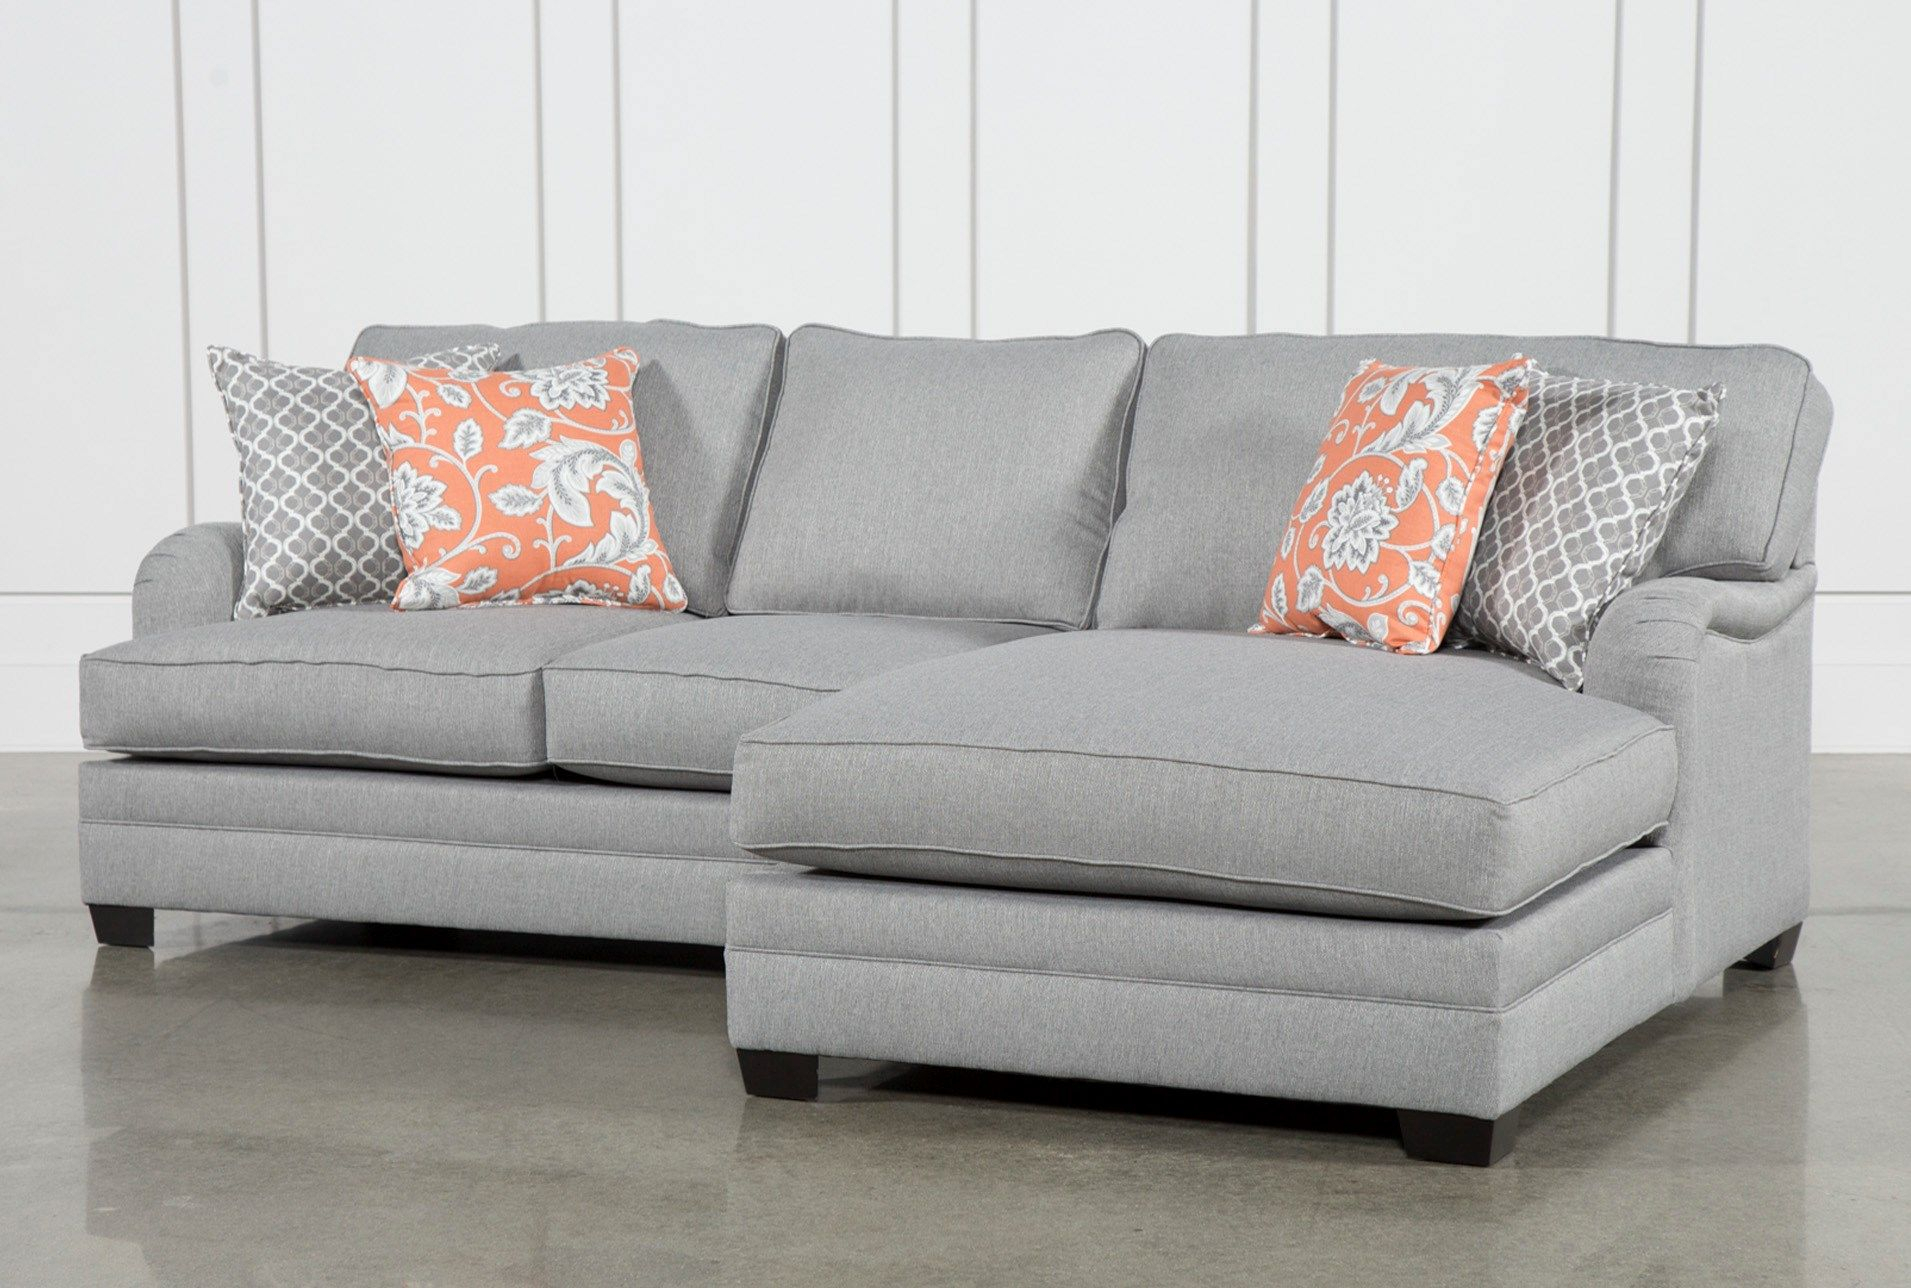 Marissa 2 Piece Sectional W/raf Chaise In 2018 | For The Home With Marissa Sofa Chairs (Image 8 of 25)